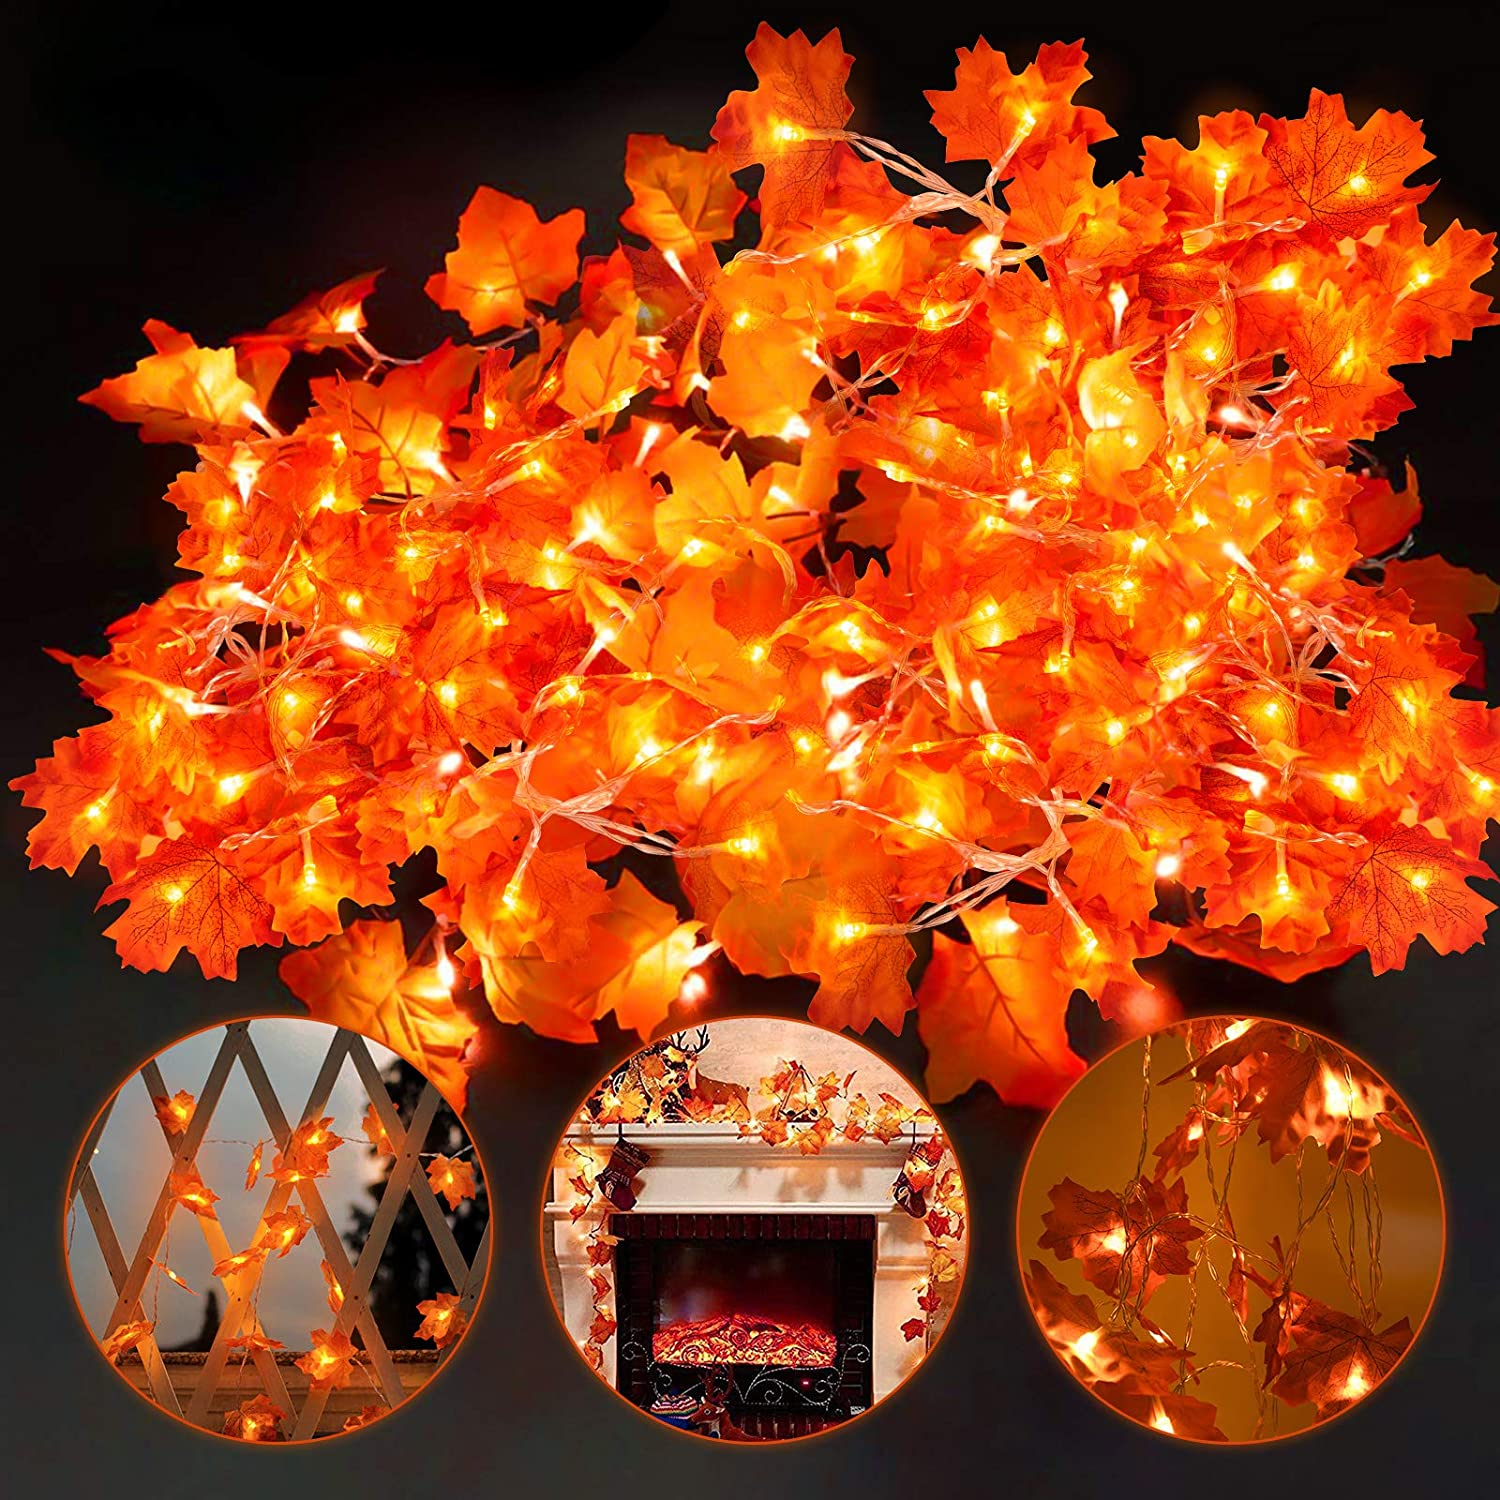 OZMI Maple Leaves Garland String Light, 1 Pack Thanksgiving Fall Decorations Leaf Garland String Lights for Indoor Outdoor 19.68 ft 40 LED, Waterproof Thanksgiving Decor Autumn Garland